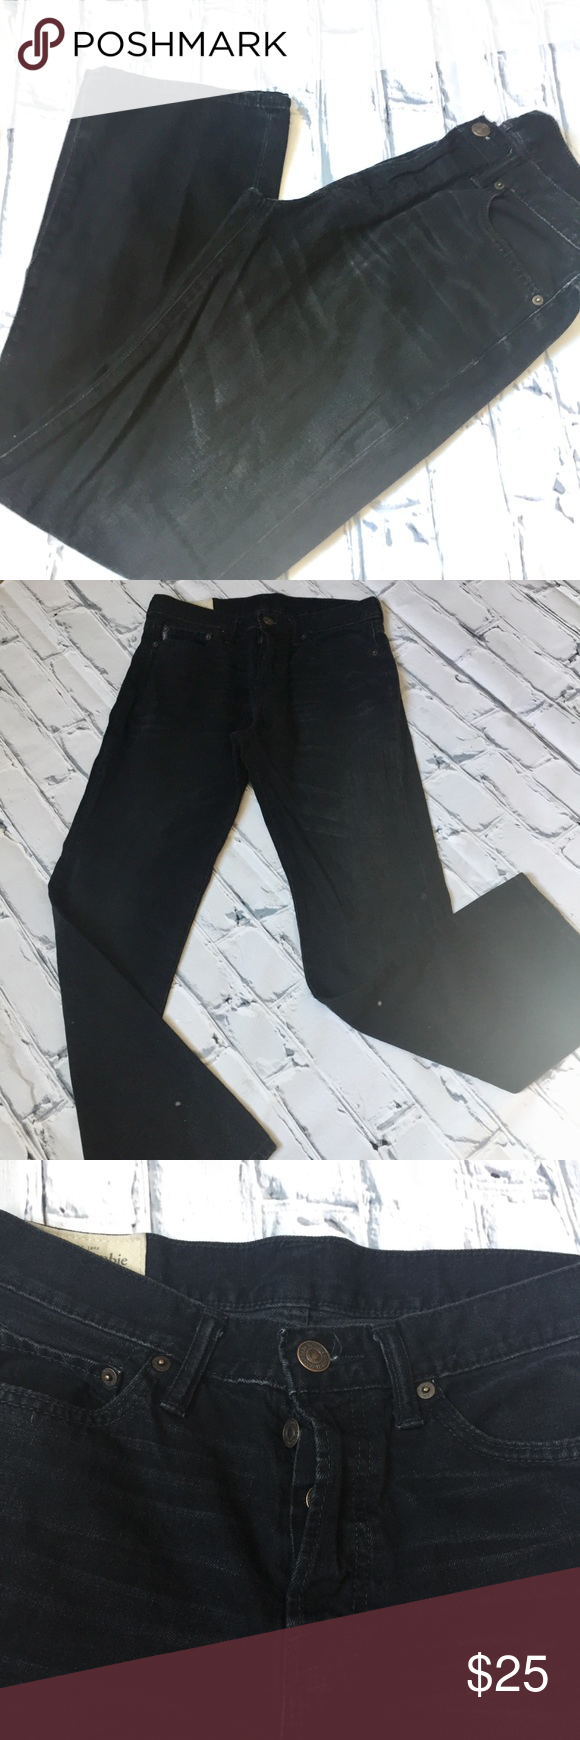 Abercrombie & Fitch Black Button Fly Jeans. Abercrombie & Fitch Black Faded Button Fly Jeans.  Straight Fit. Abercrombie & Fitch Jeans Straight